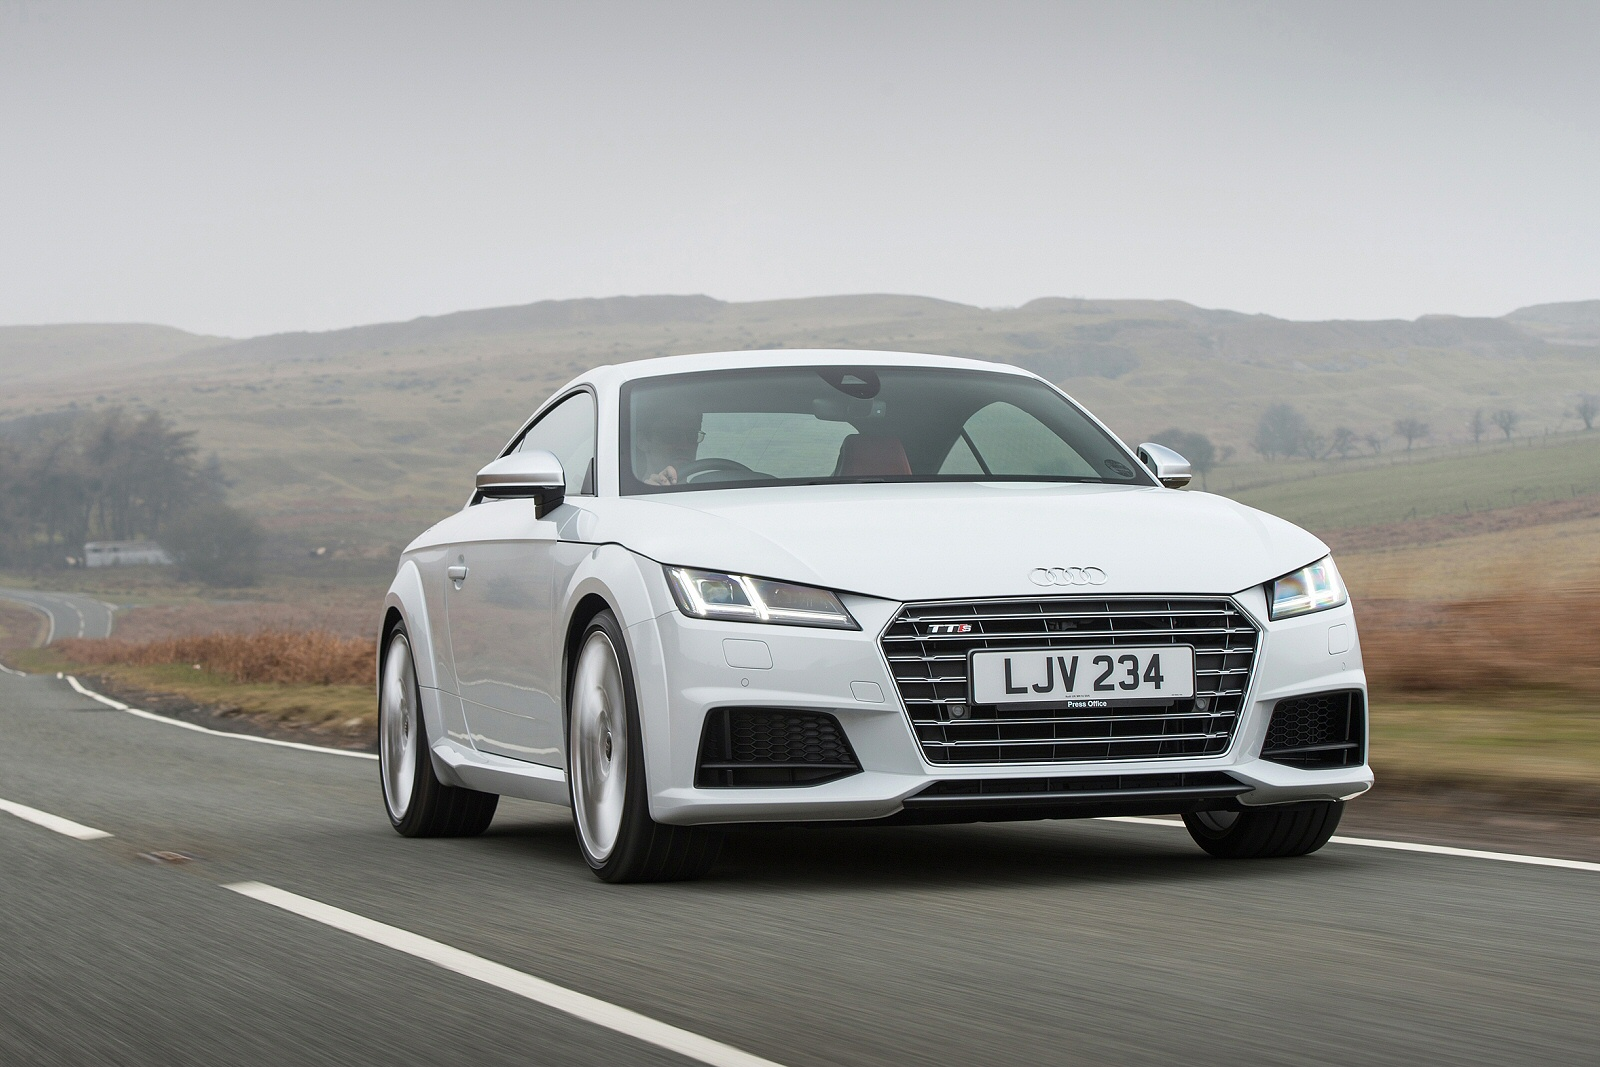 new audi tt 2 0t fsi quattro tts 2dr s tronic petrol coupe for sale hereford audi. Black Bedroom Furniture Sets. Home Design Ideas